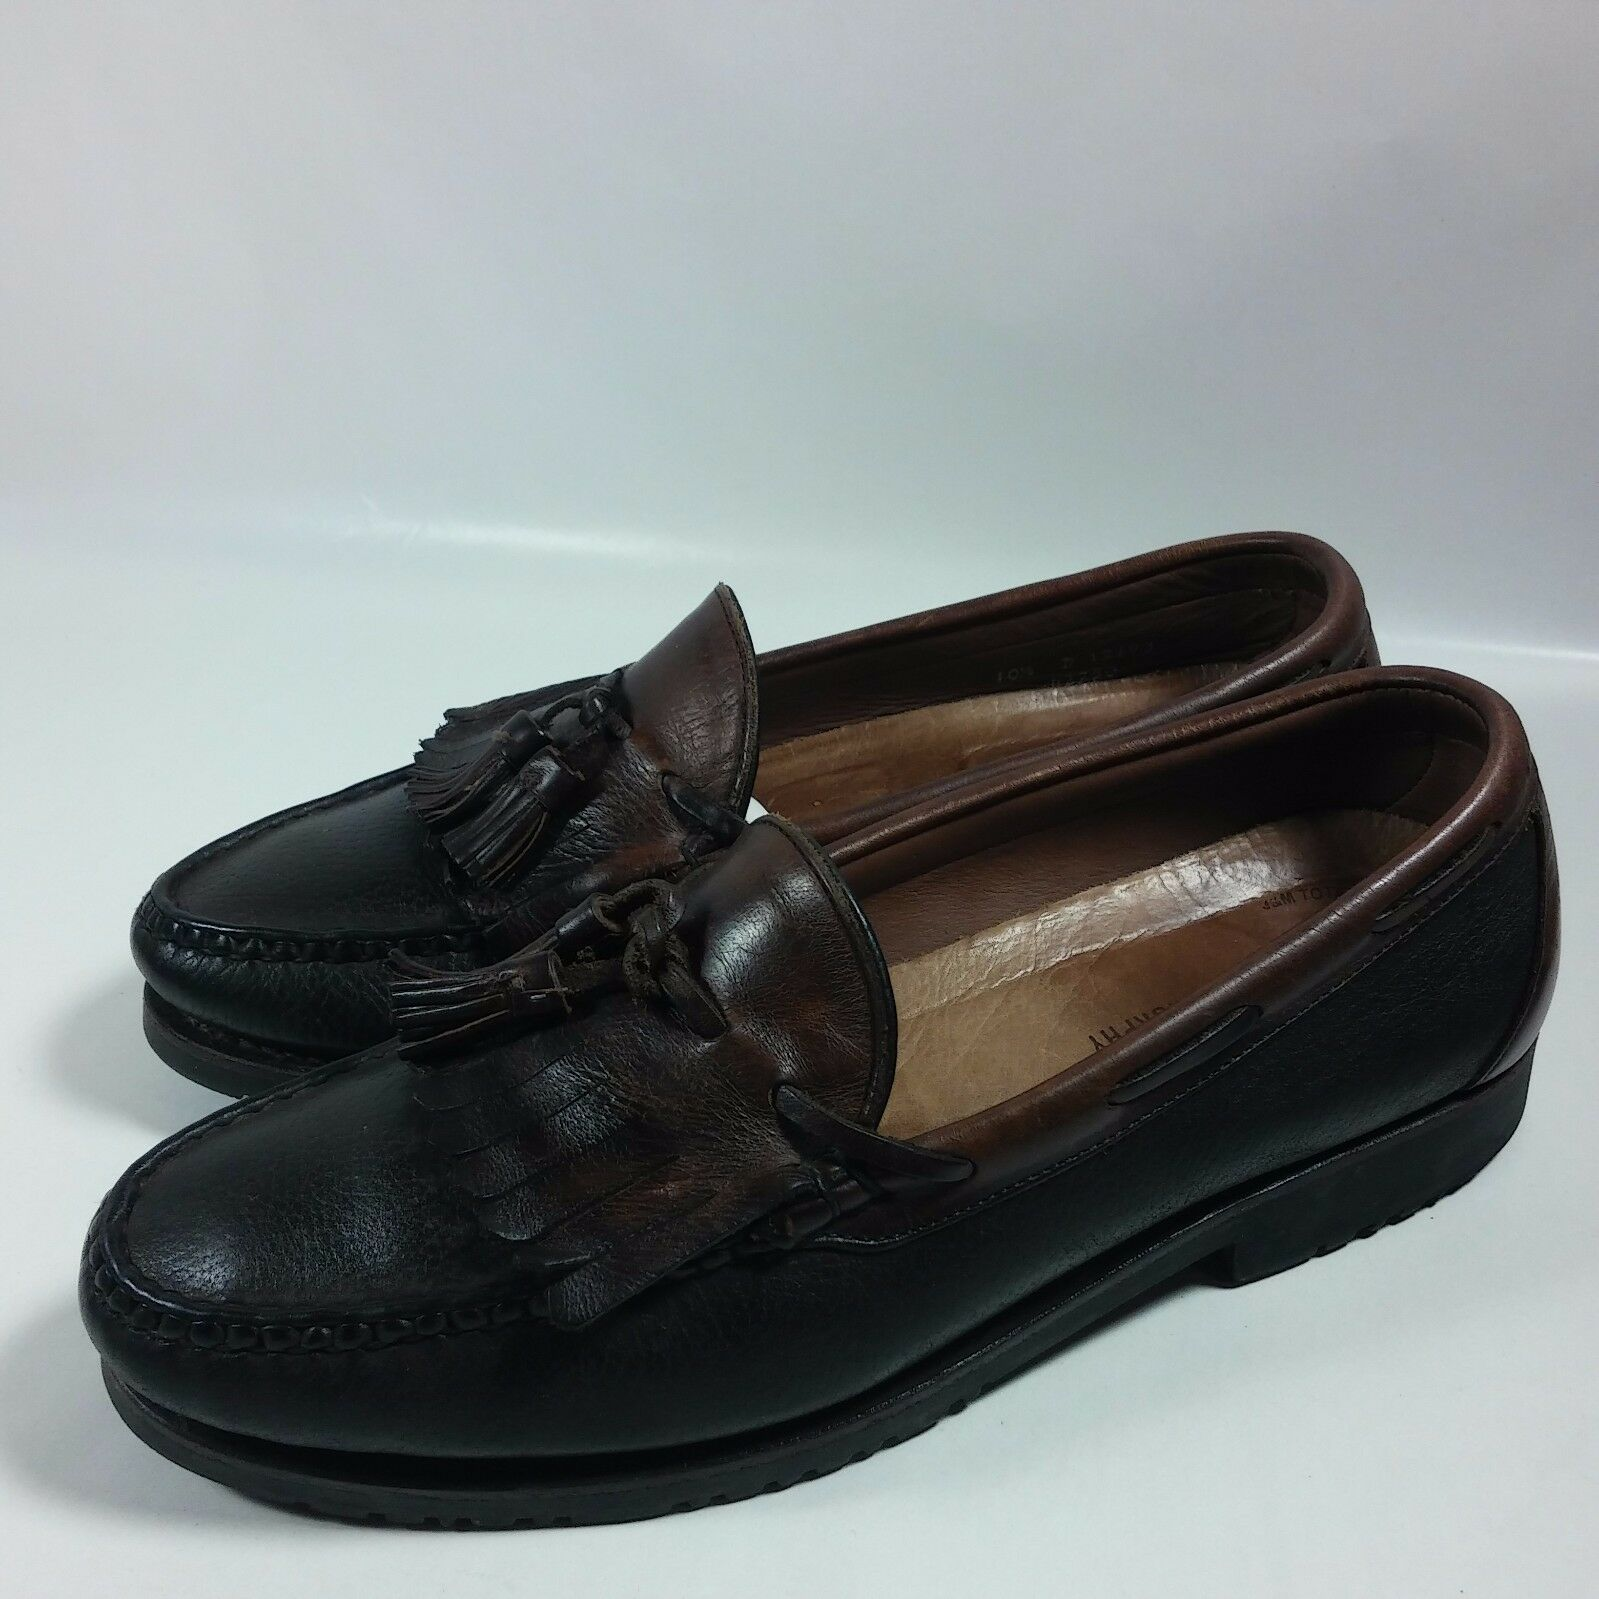 VINTAGE Men's Allen Edmonds Tassel Loafers shoes 2 Tone Brown Leather-10.5 D